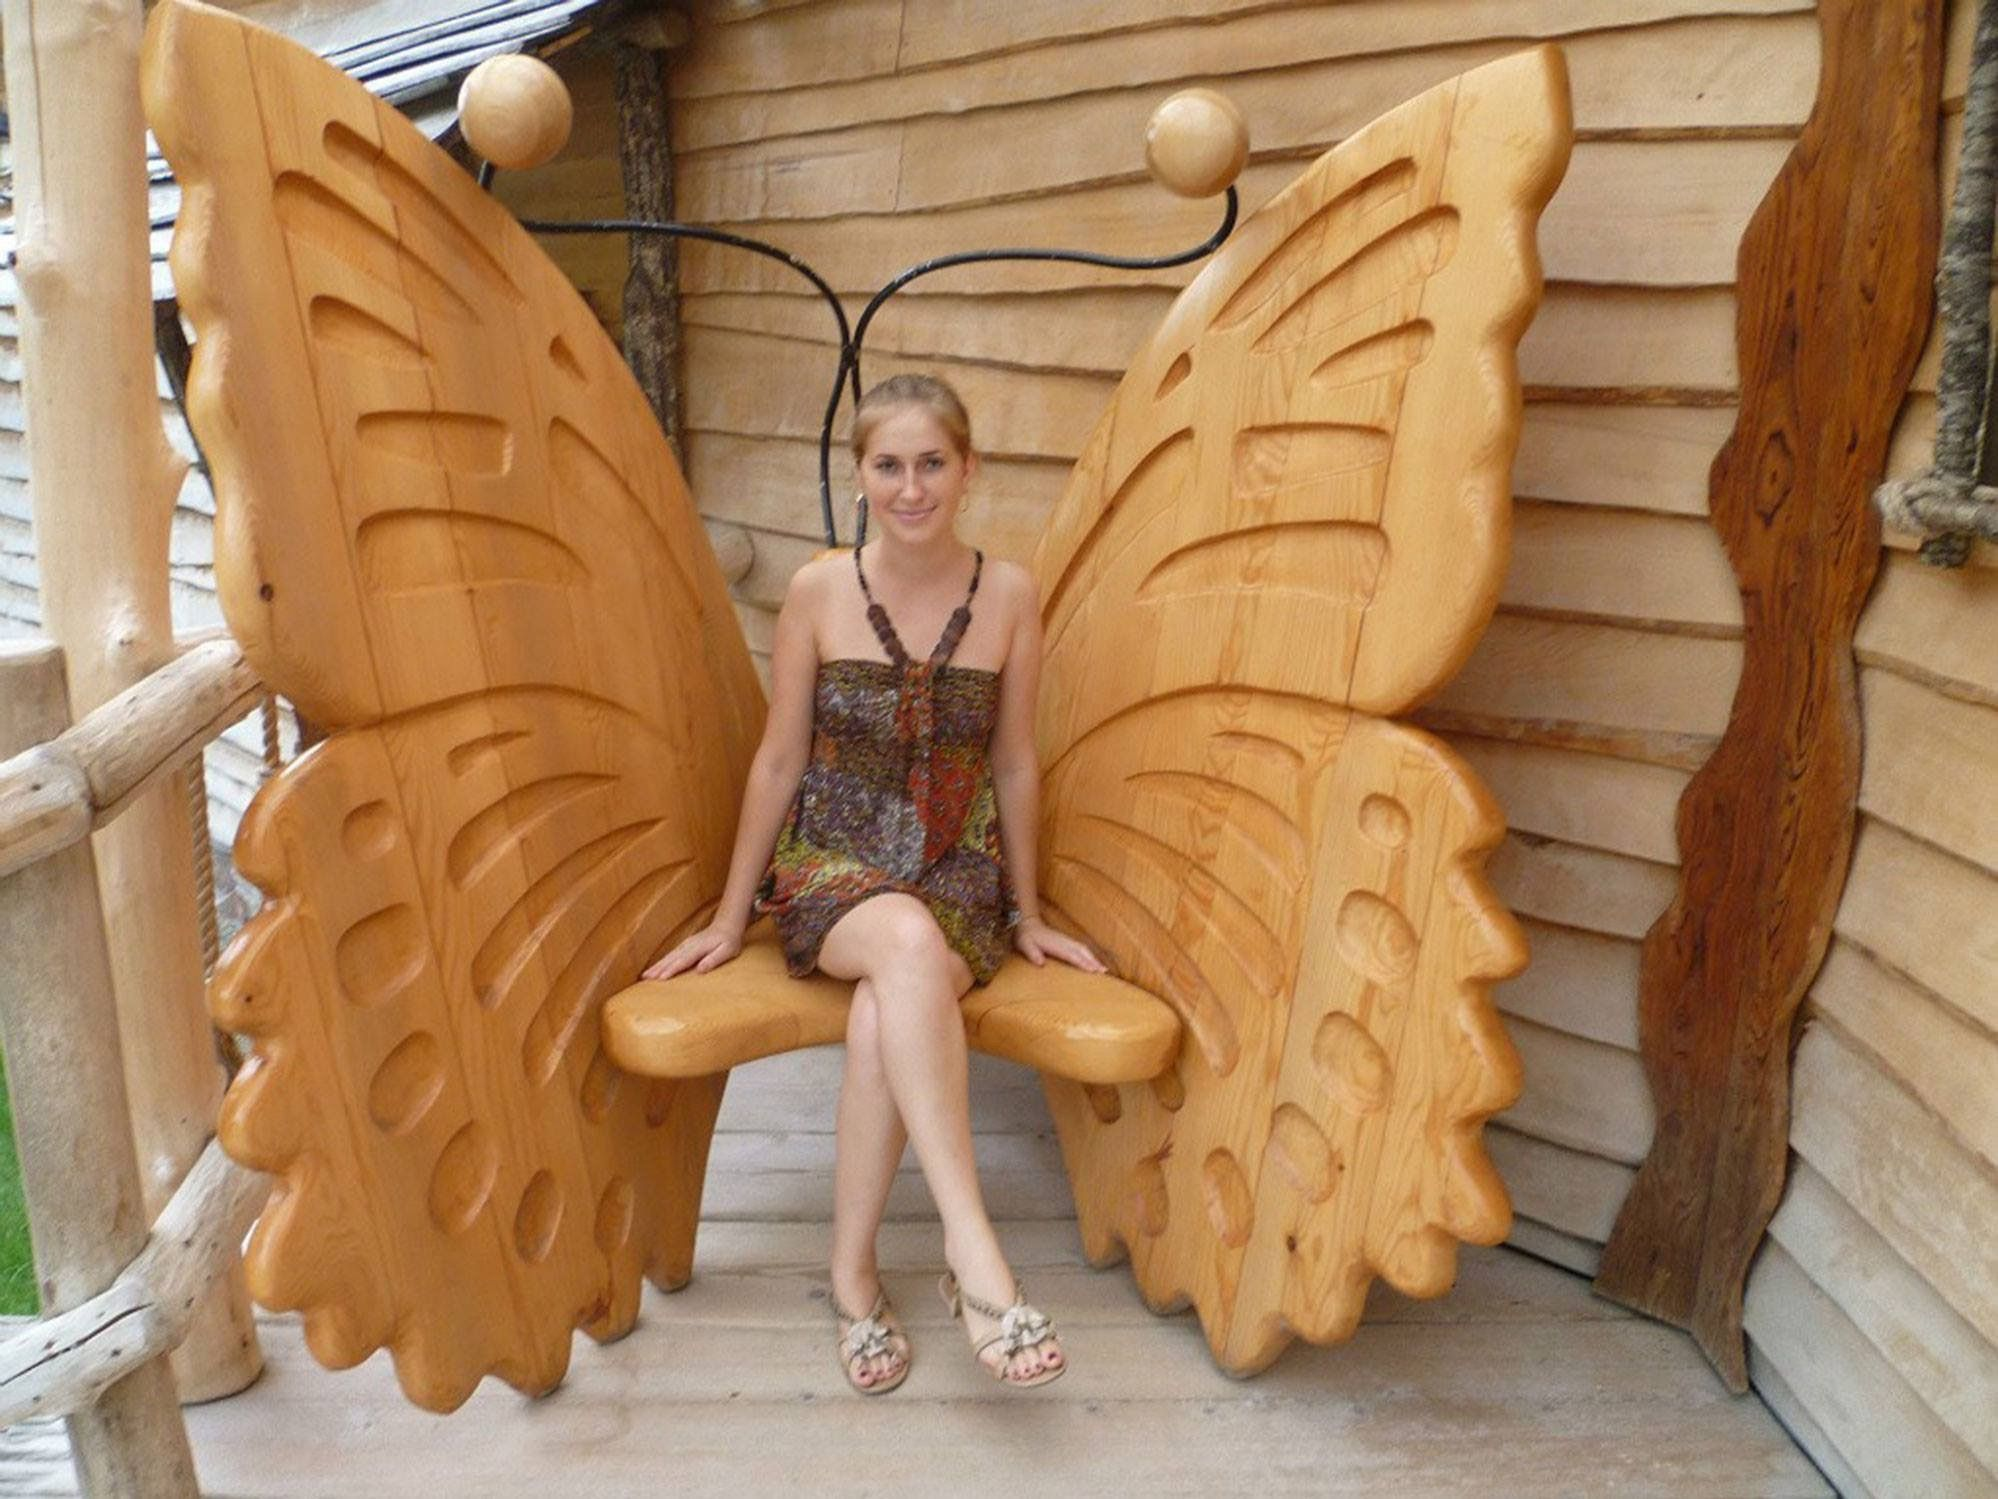 Carved Wooden Butterfly Chair Diy Home Projects Wood